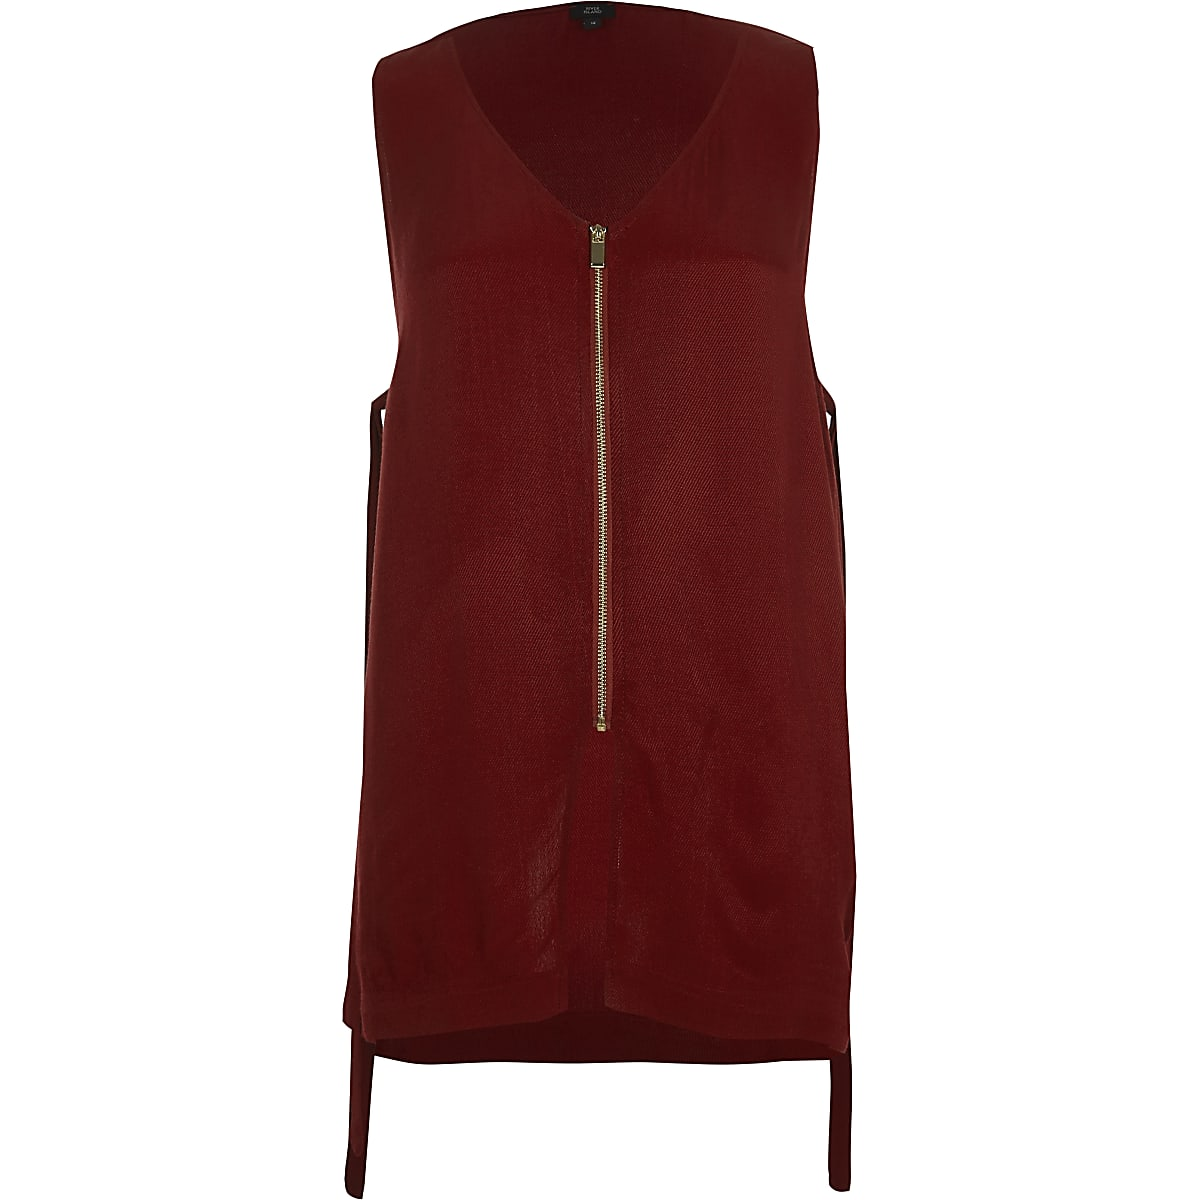 Dark red zip front sleeveless top